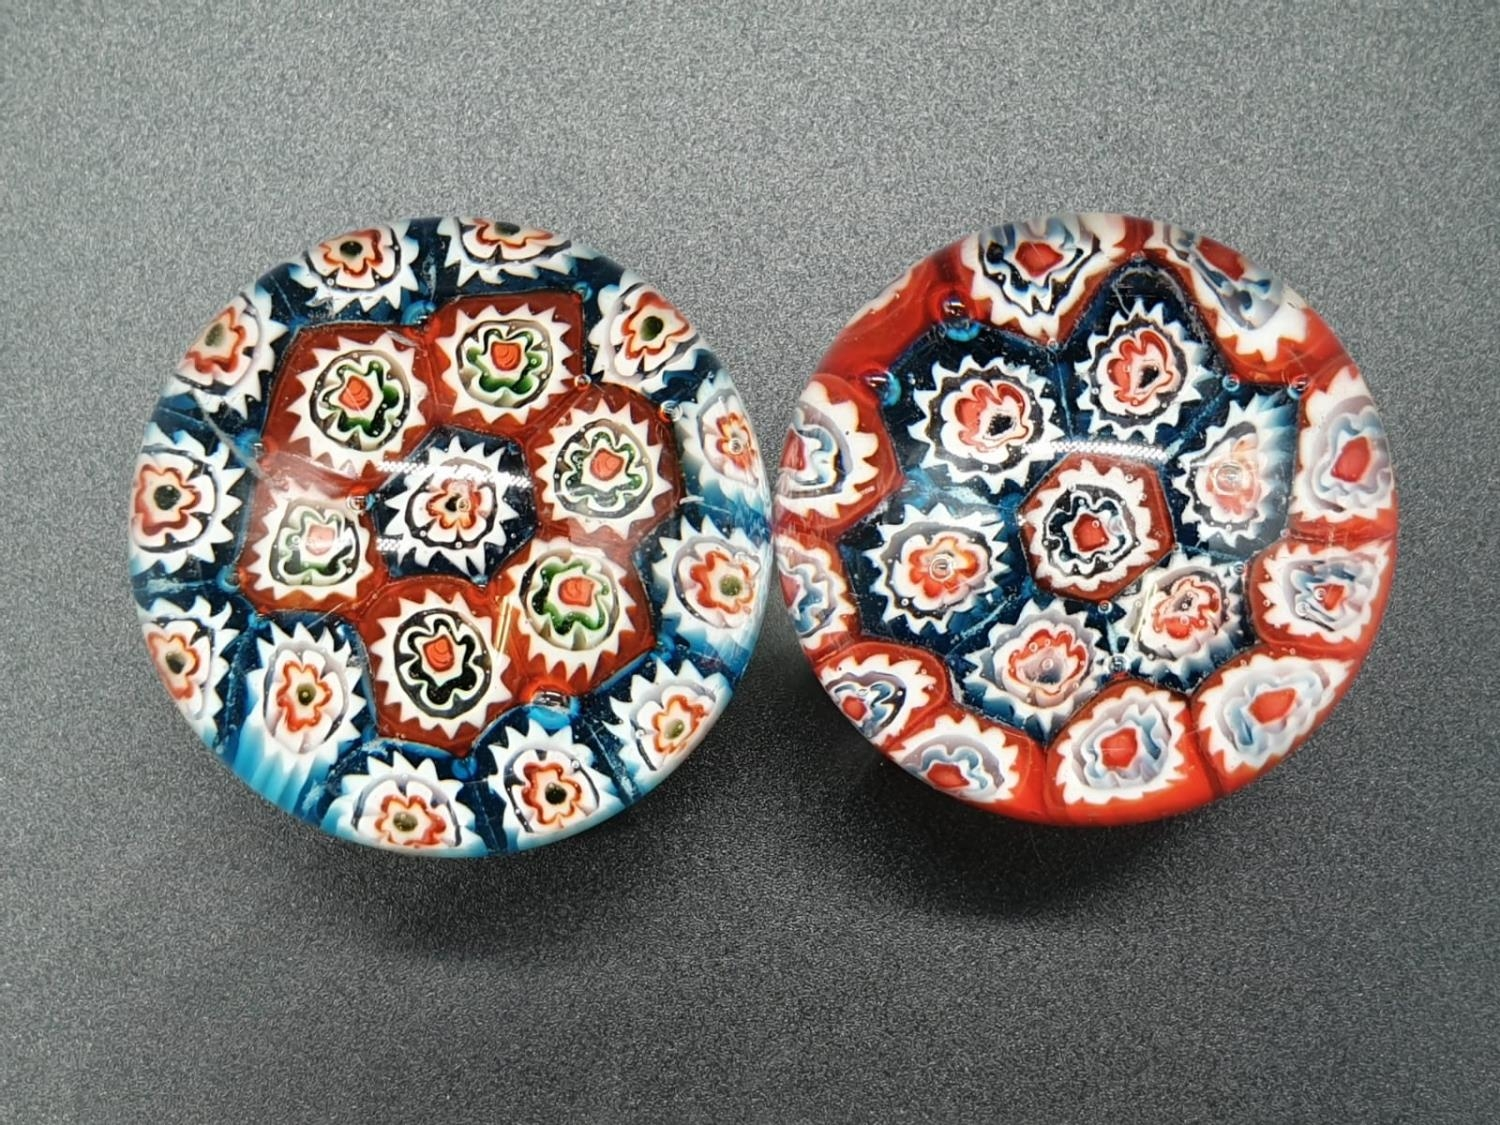 Collection of 6 paperweights, 4 are Millefiori styled, the other two are Caithness paperweights, the - Image 12 of 13